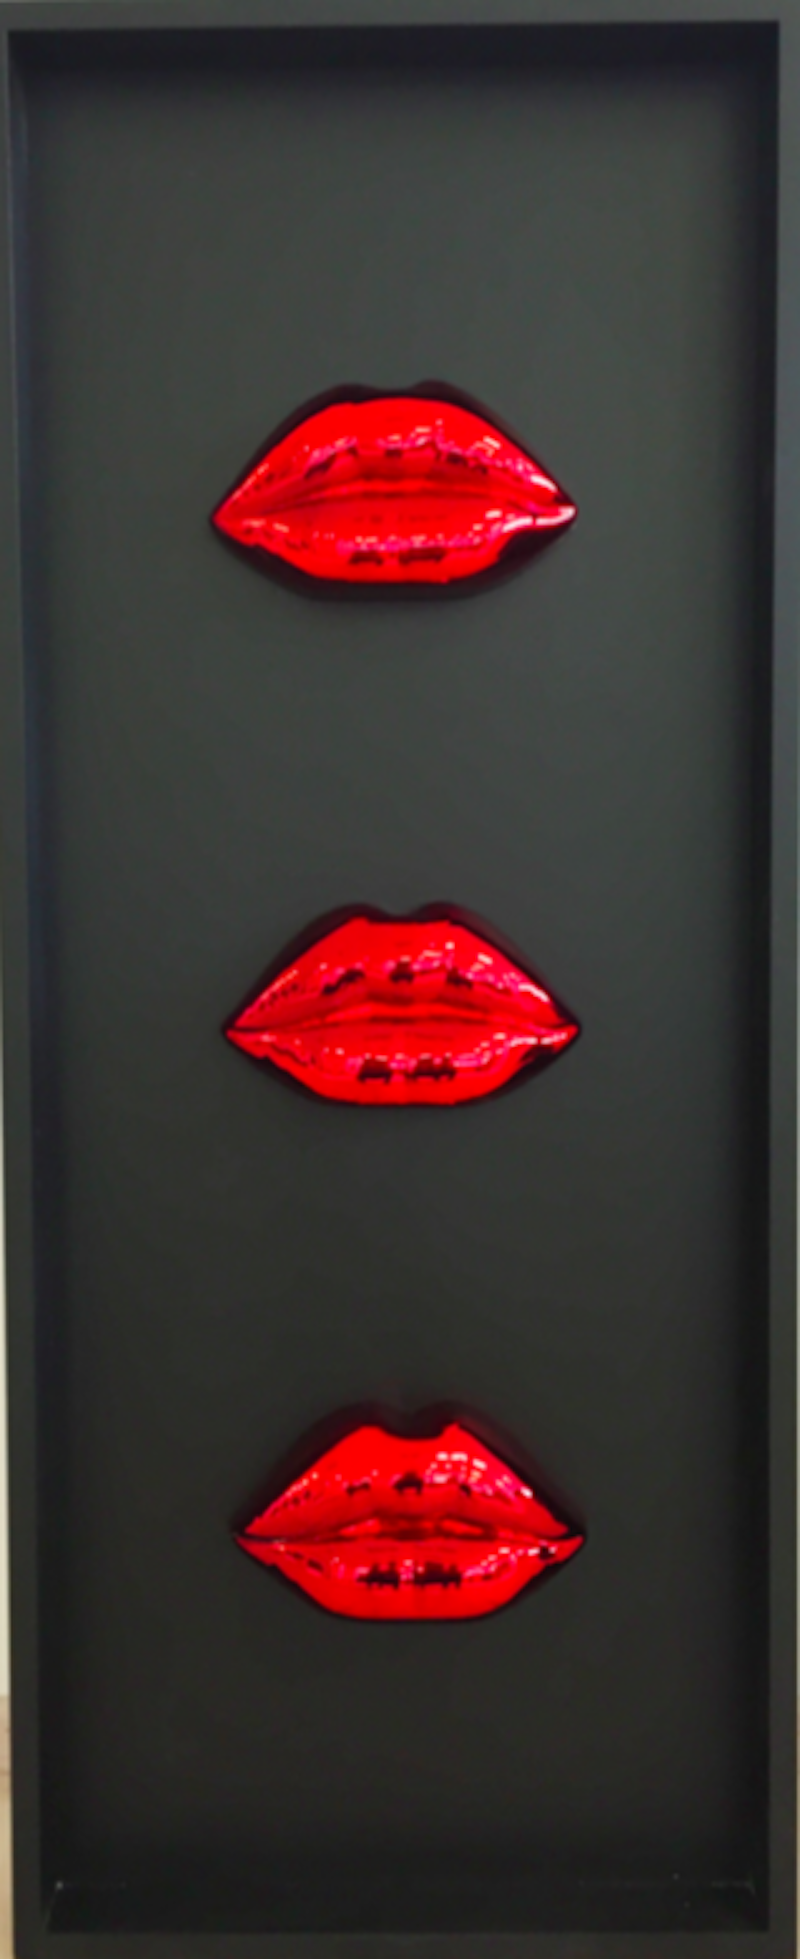 Cleopatra's Lips Red 3 times by Niclas Castello